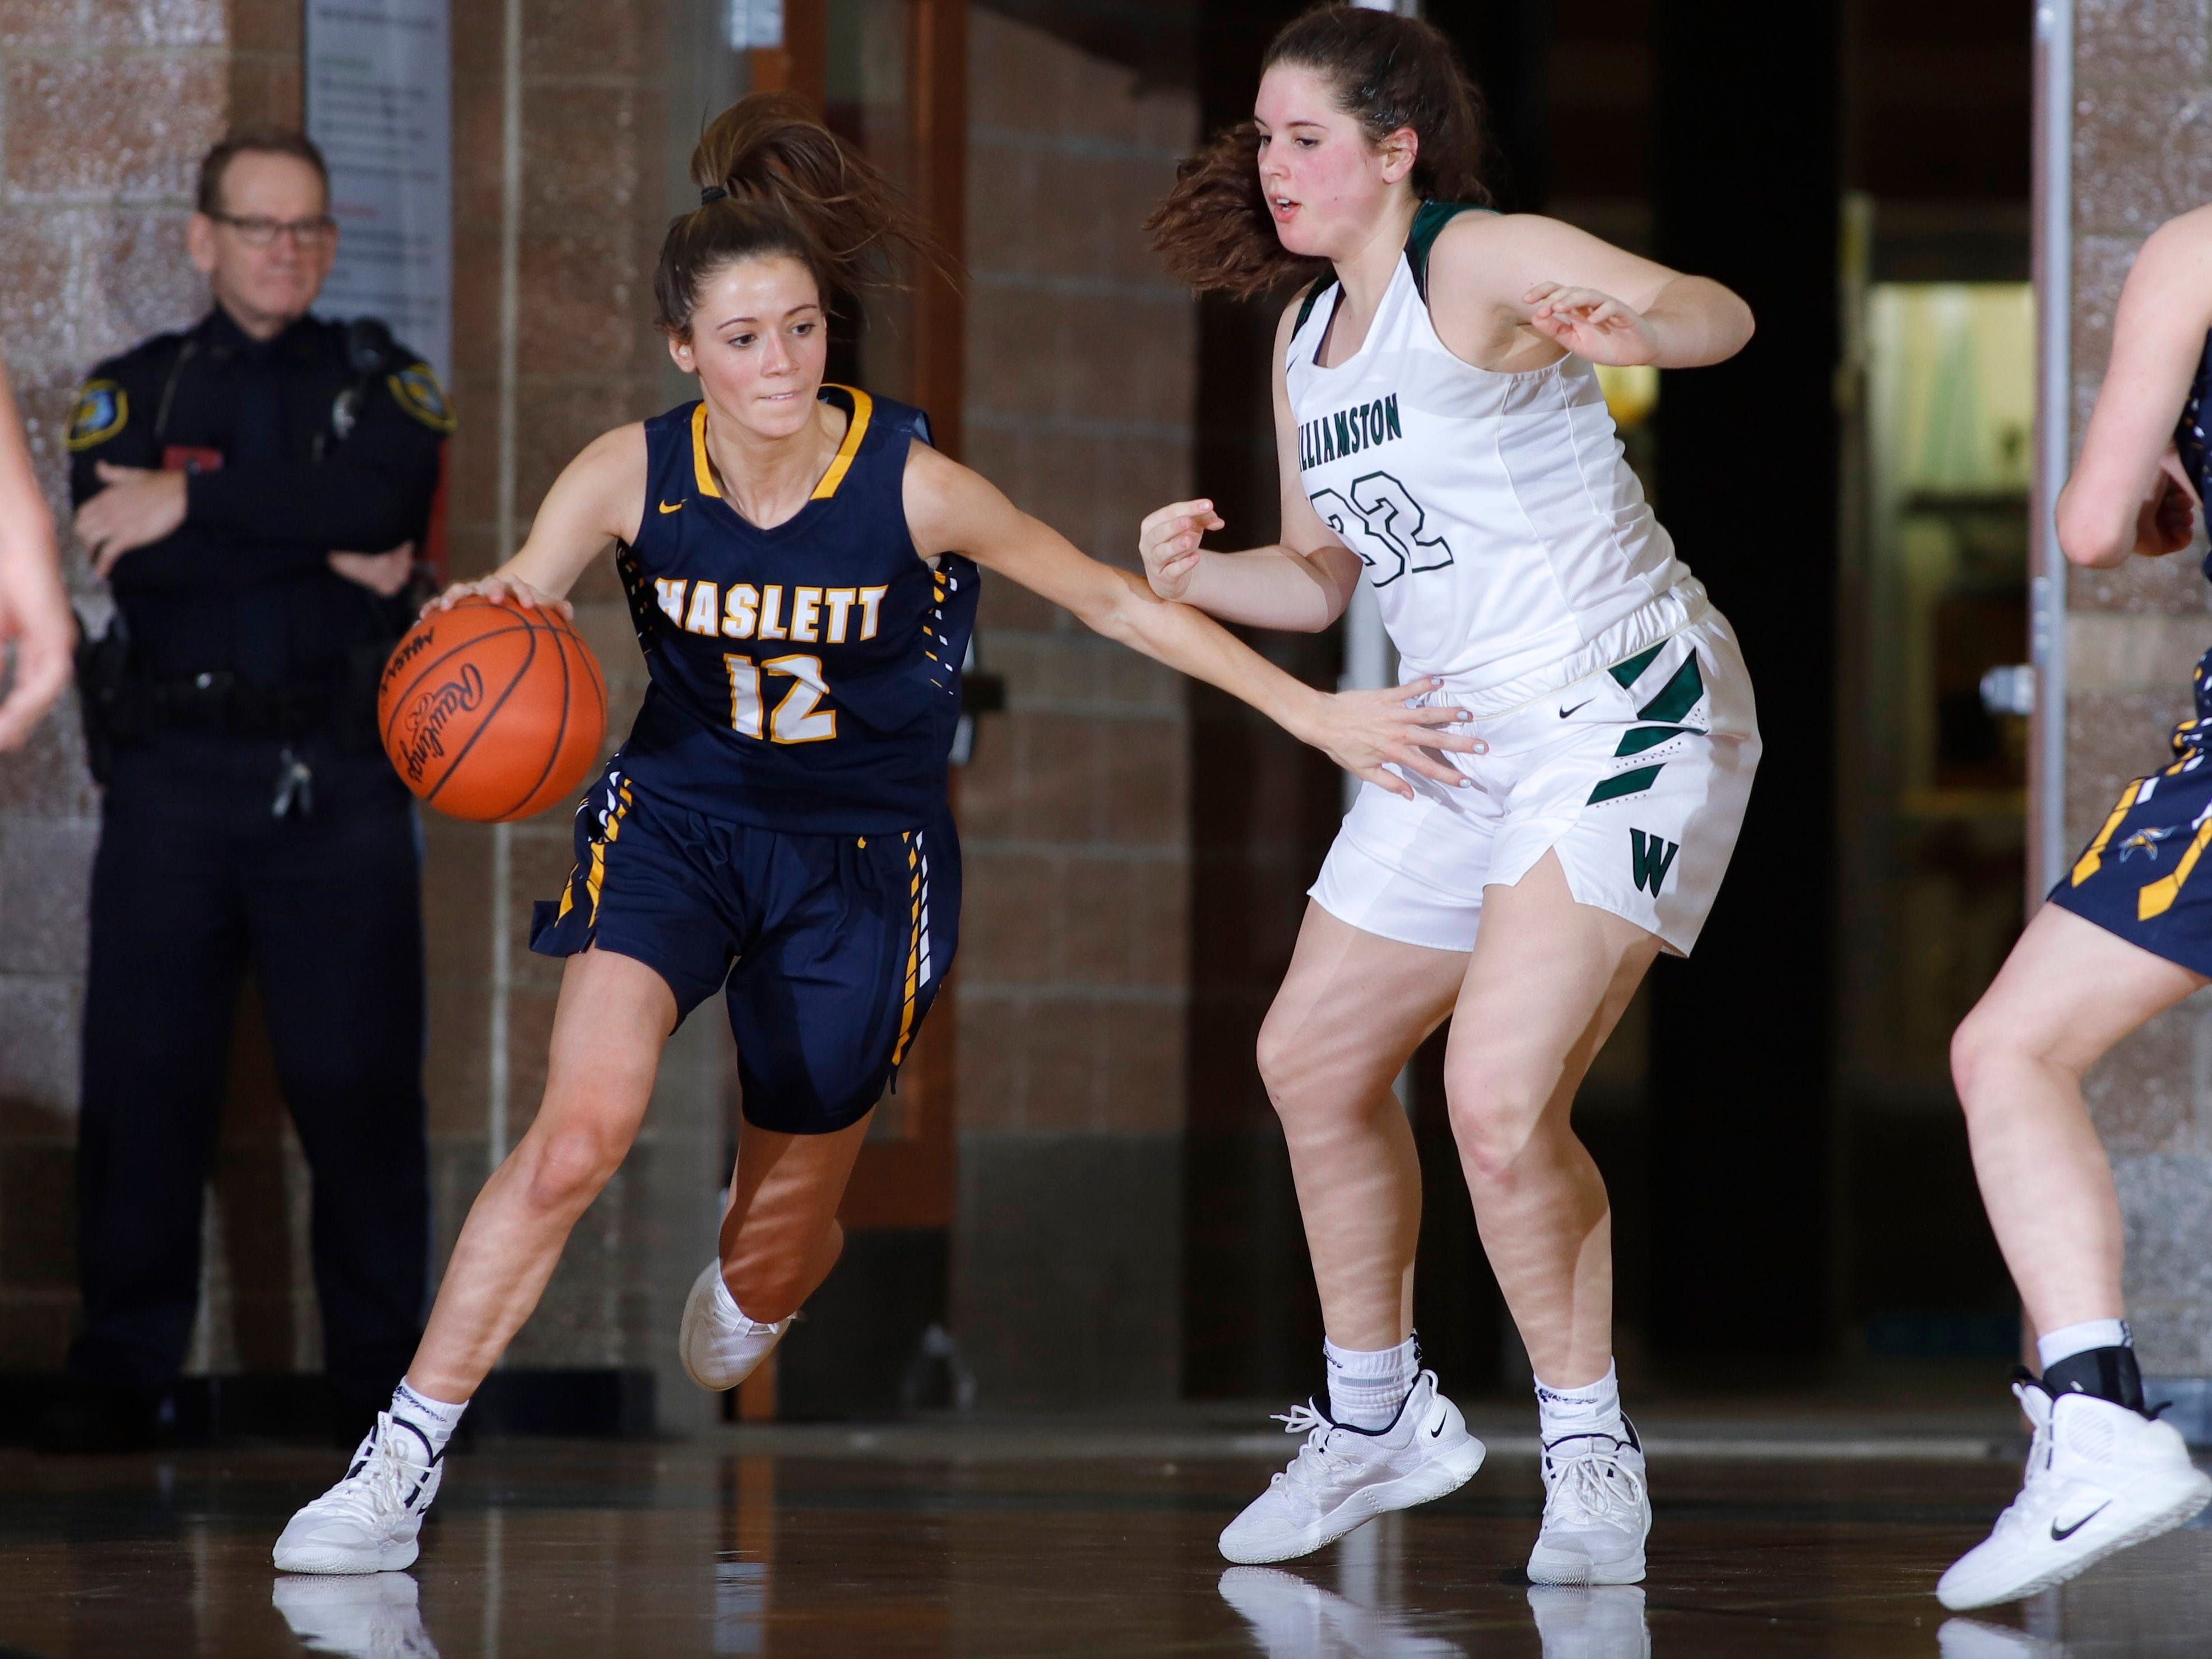 Haslett's Brenna Bailey, left, drives against Williamston's Meghan Douglass, Friday, Jan. 11, 2019, in Williamston, Mich.